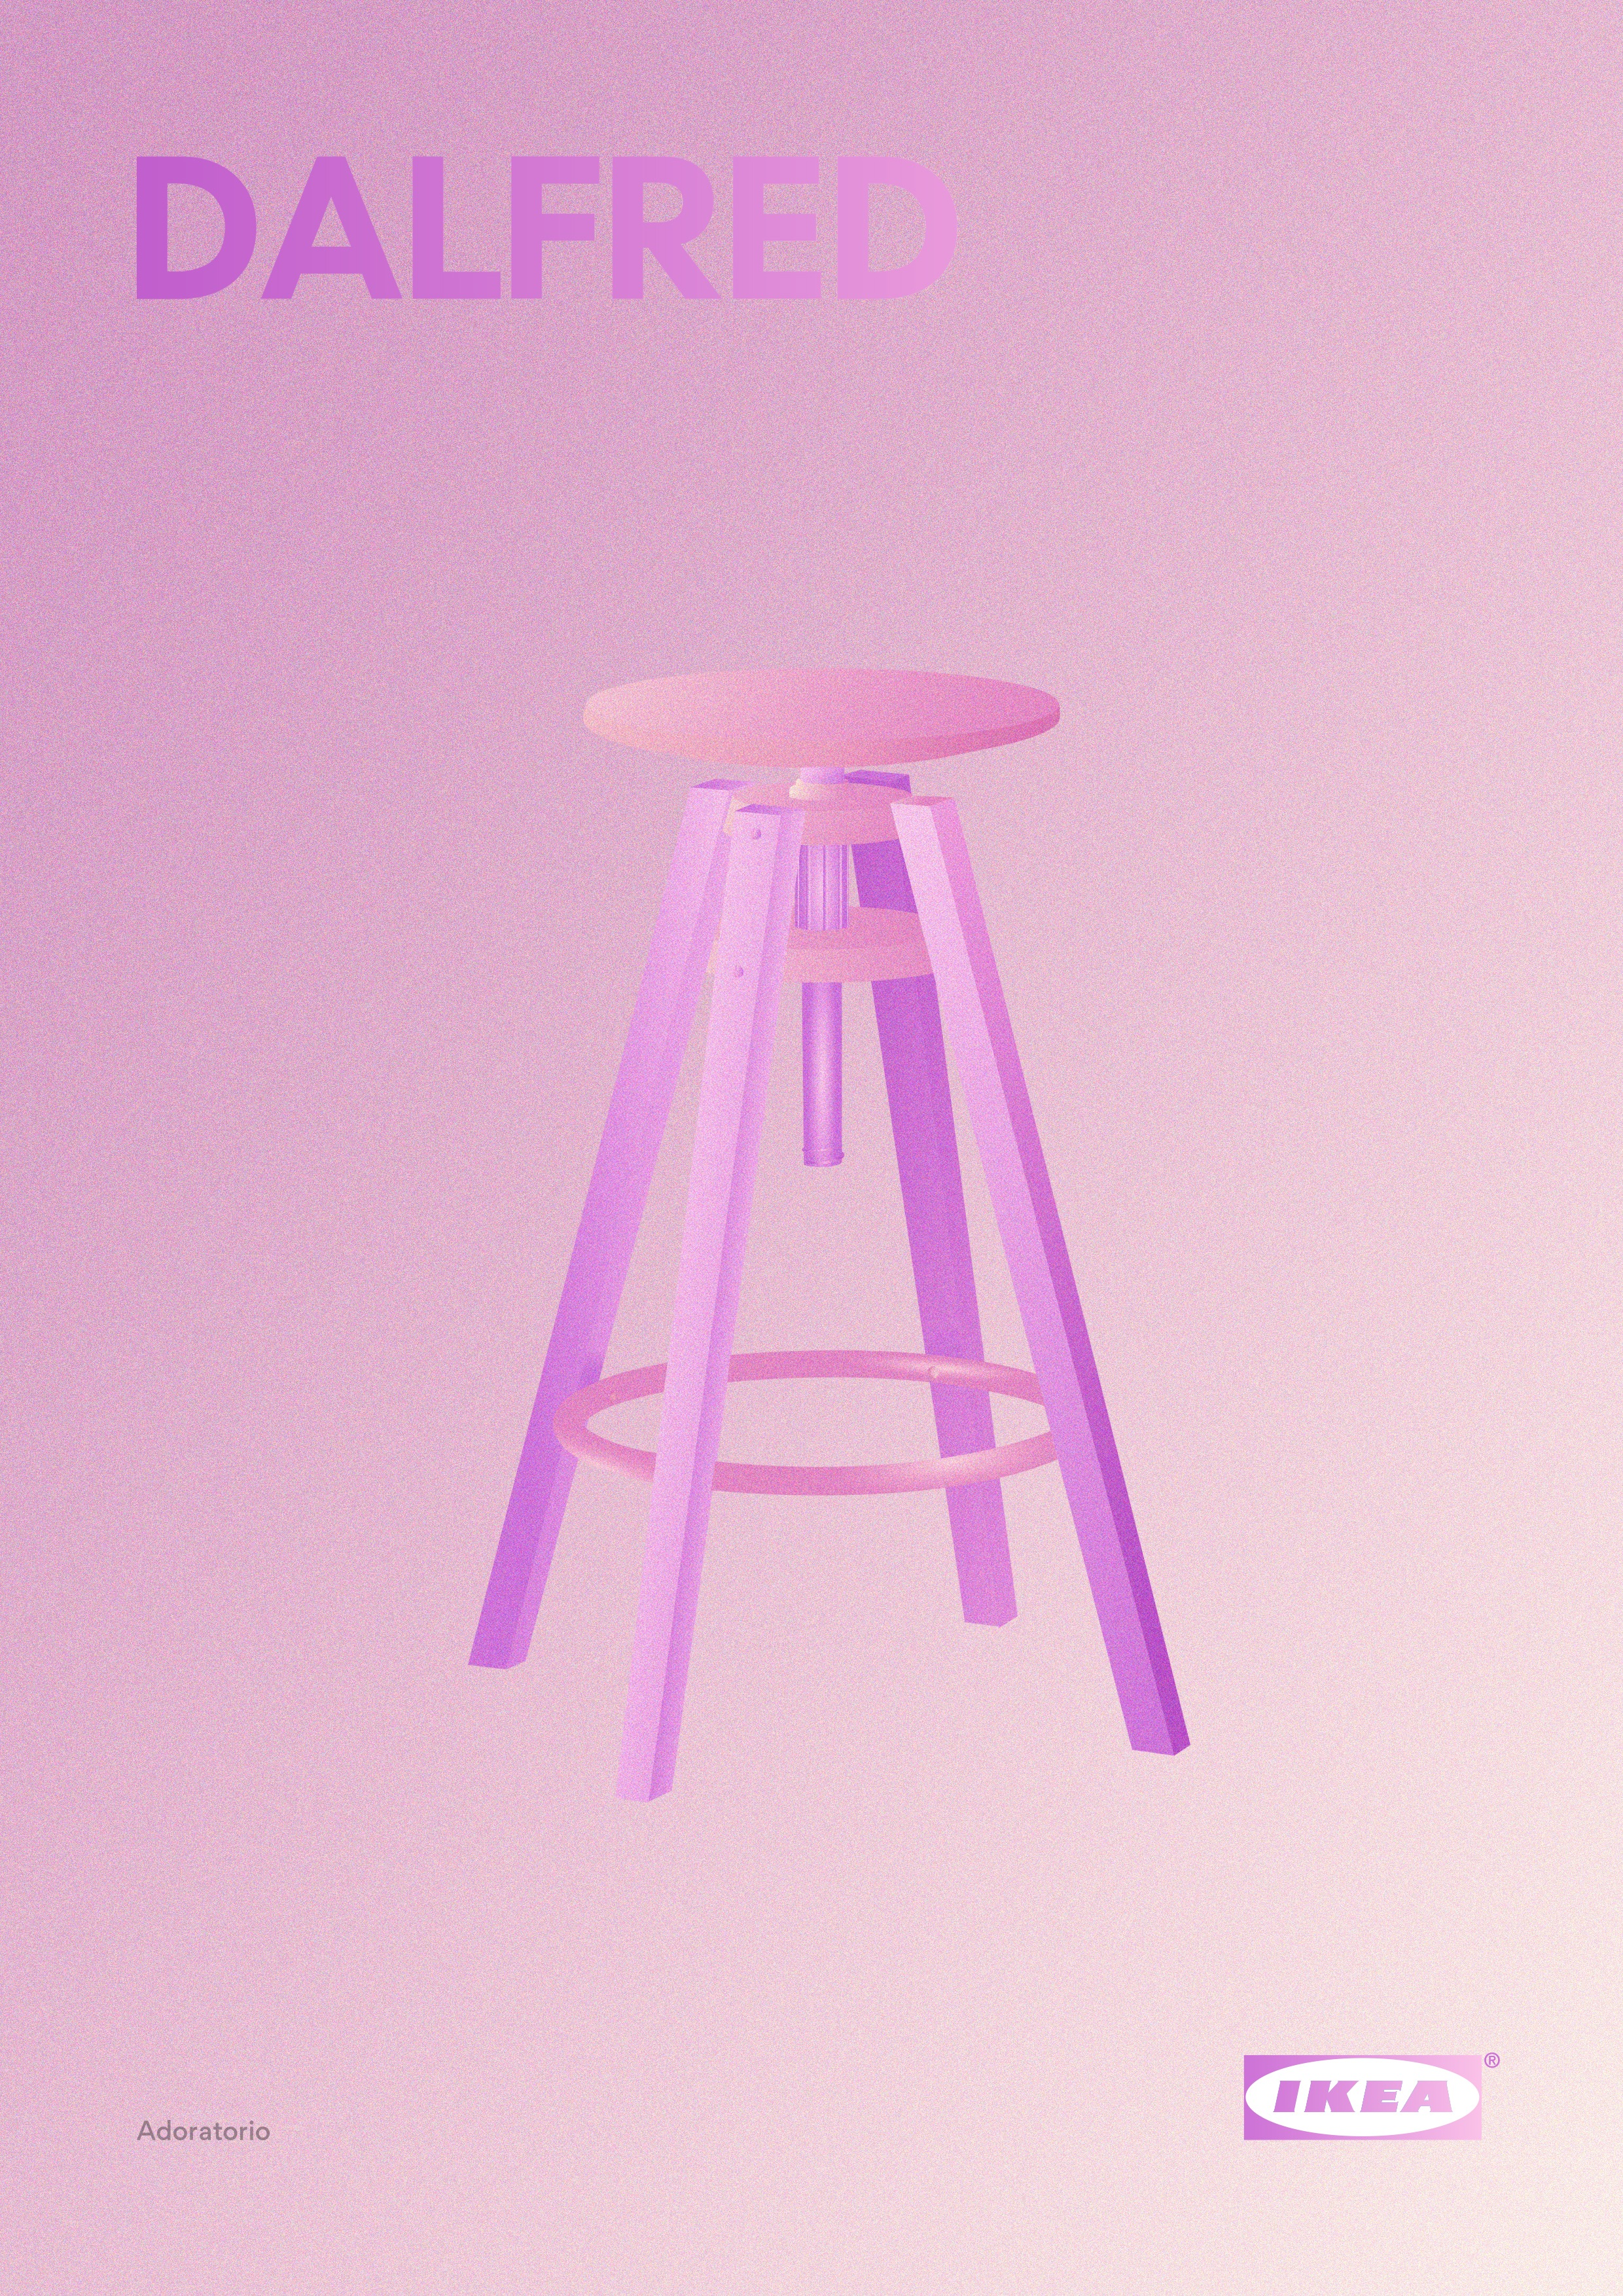 Stunning Color Gradient Ikea Posters